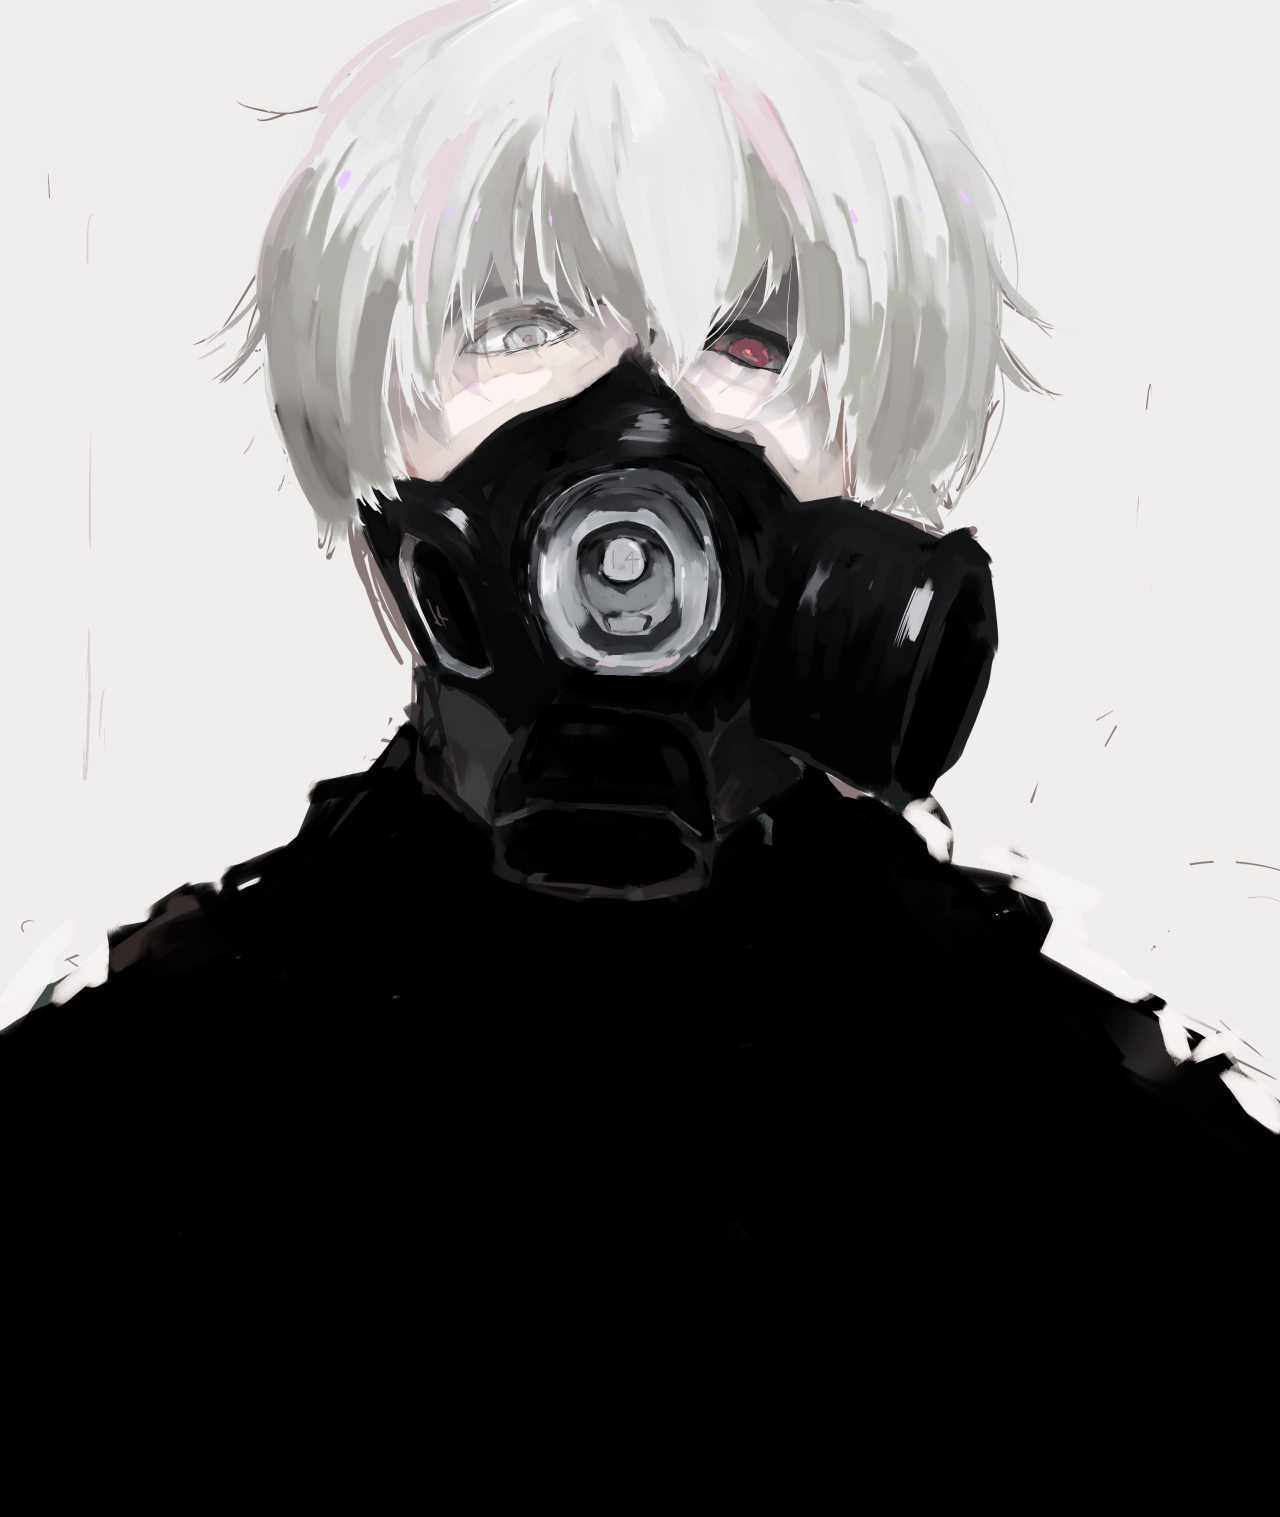 Tokyo Ghoul Tokyo Ghoul Anime Tokyo Ghoul Tokyo Ghoul Wallpapers